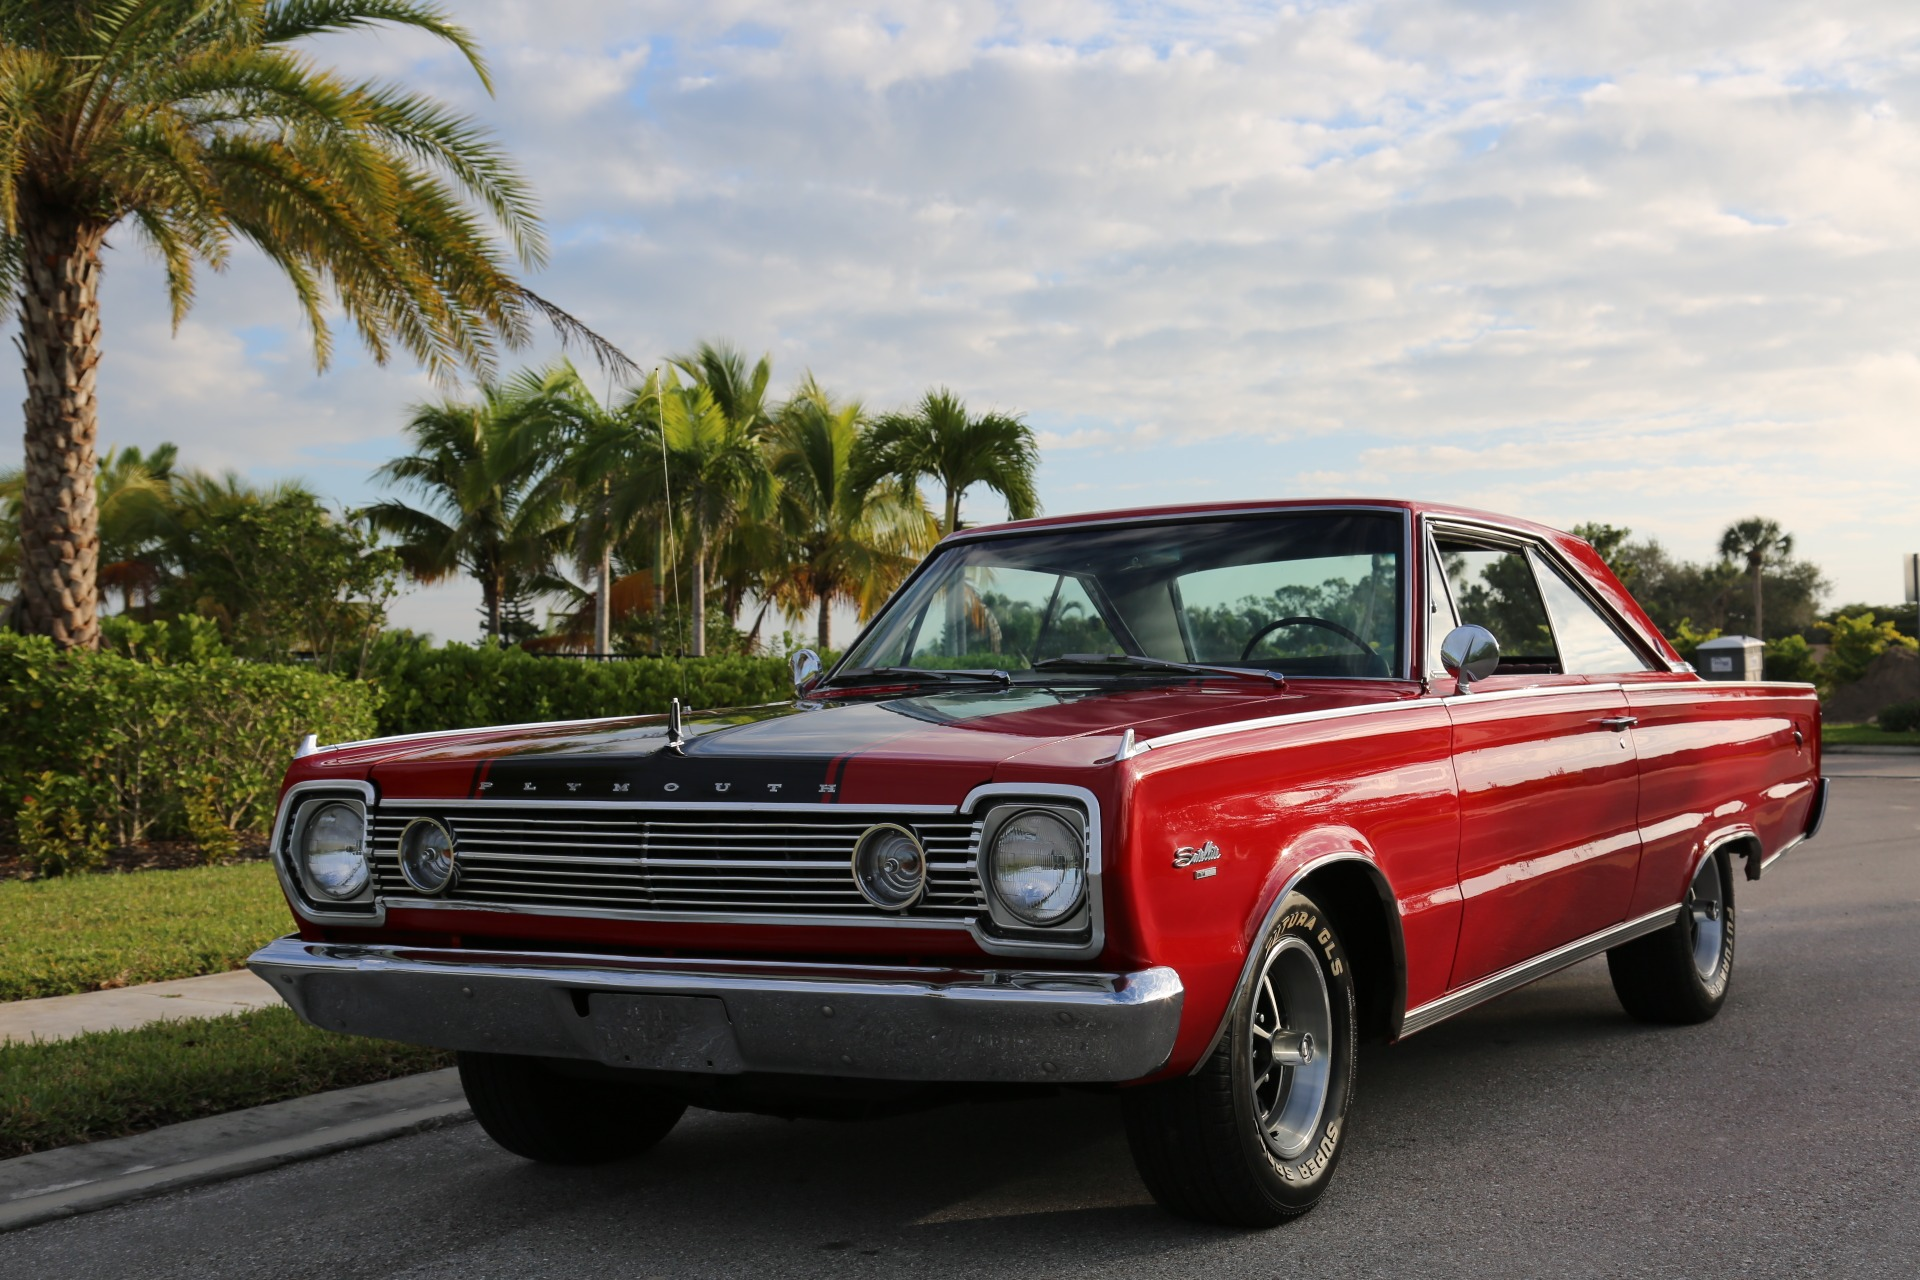 Used 1966 Plymouth Satellite 440 V8 Automatic for sale $19,900 at Muscle Cars for Sale Inc. in Fort Myers FL 33912 4